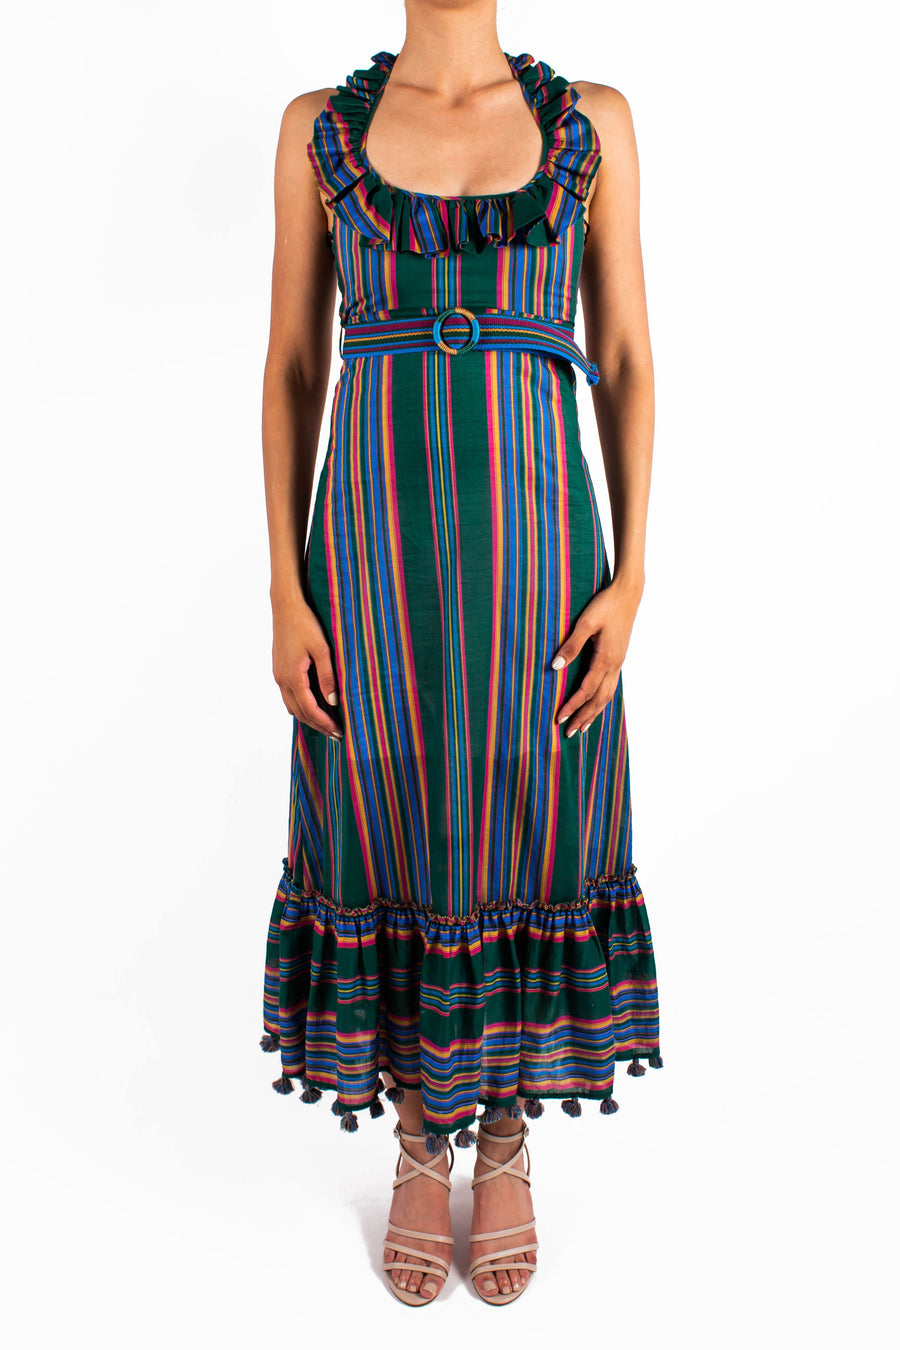 Allia Stripe Picnic Dress Front